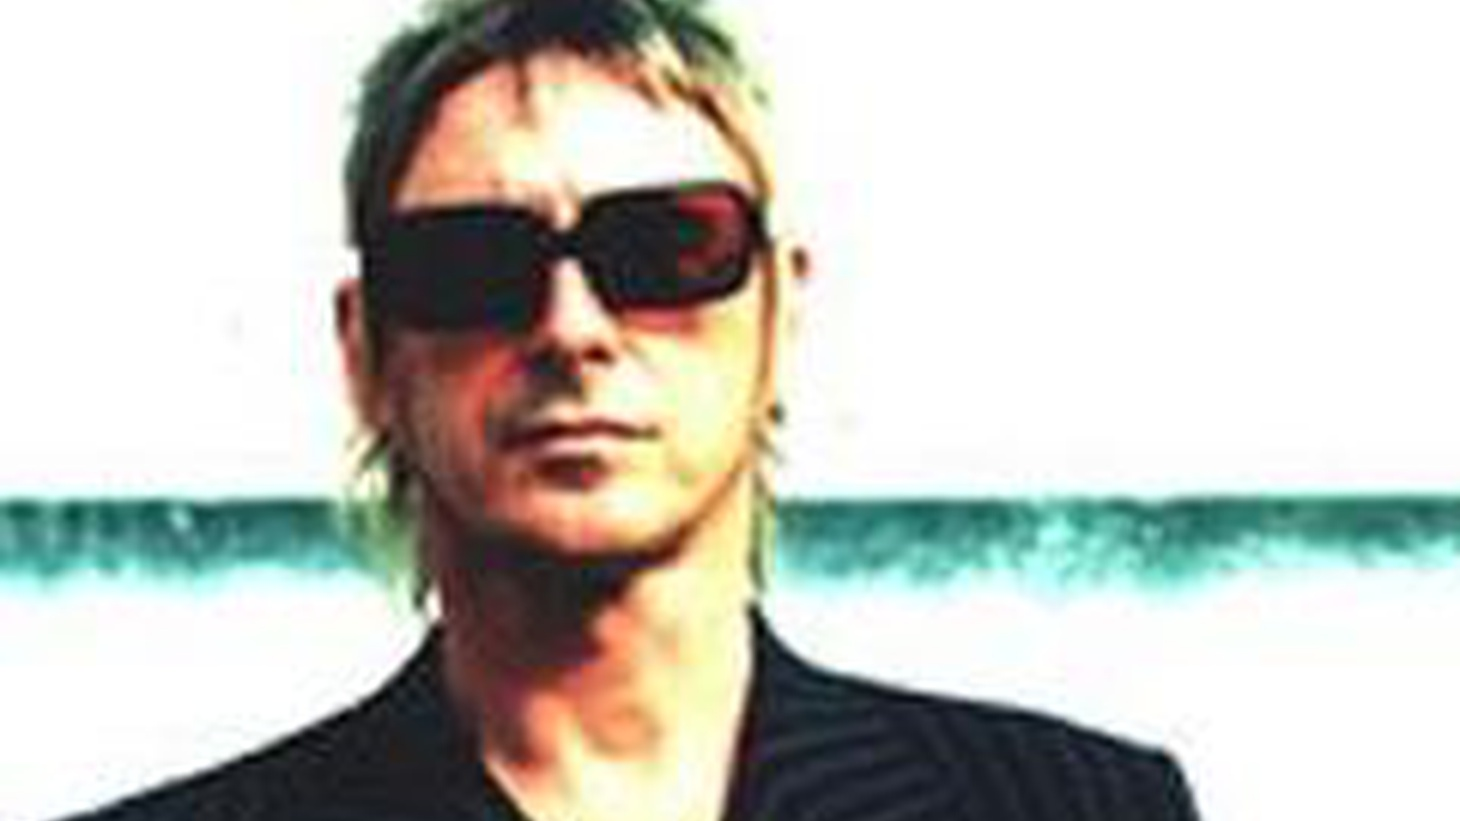 Frontman for Style Council and The Jam Paul Weller returns to make beautiful music on                                                                                                                 Morning Becomes Eclectic                                                                                                                 at 11:15am.